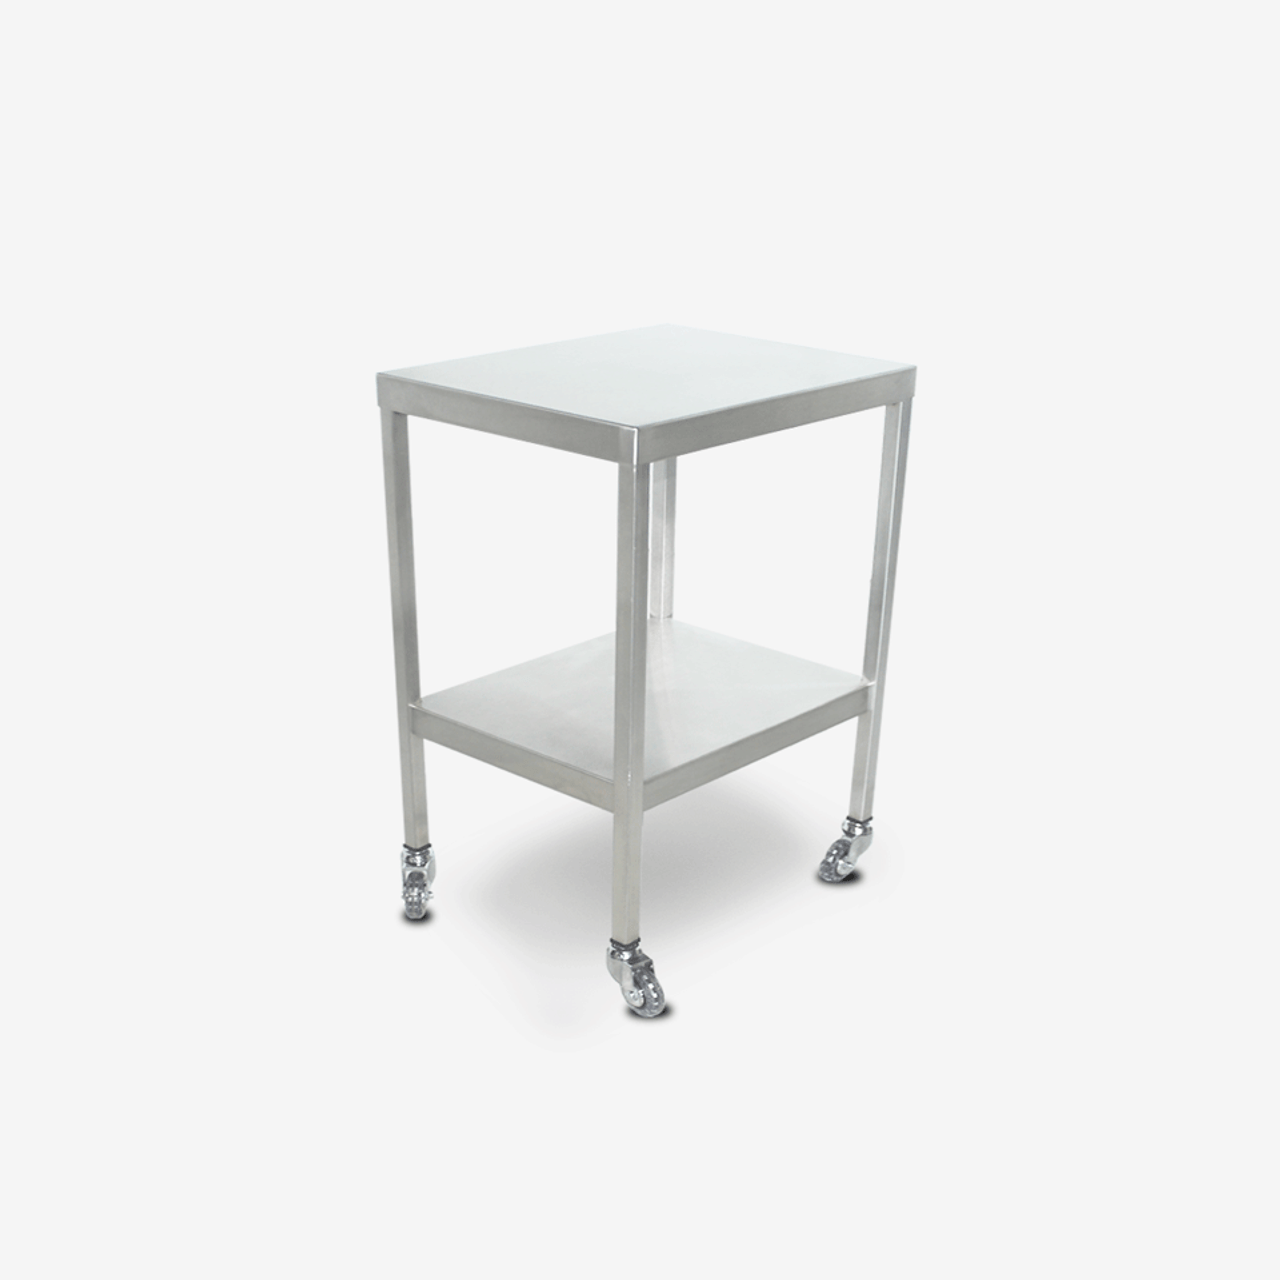 ITS  1630   16 X 30 X 34 Instrument Table